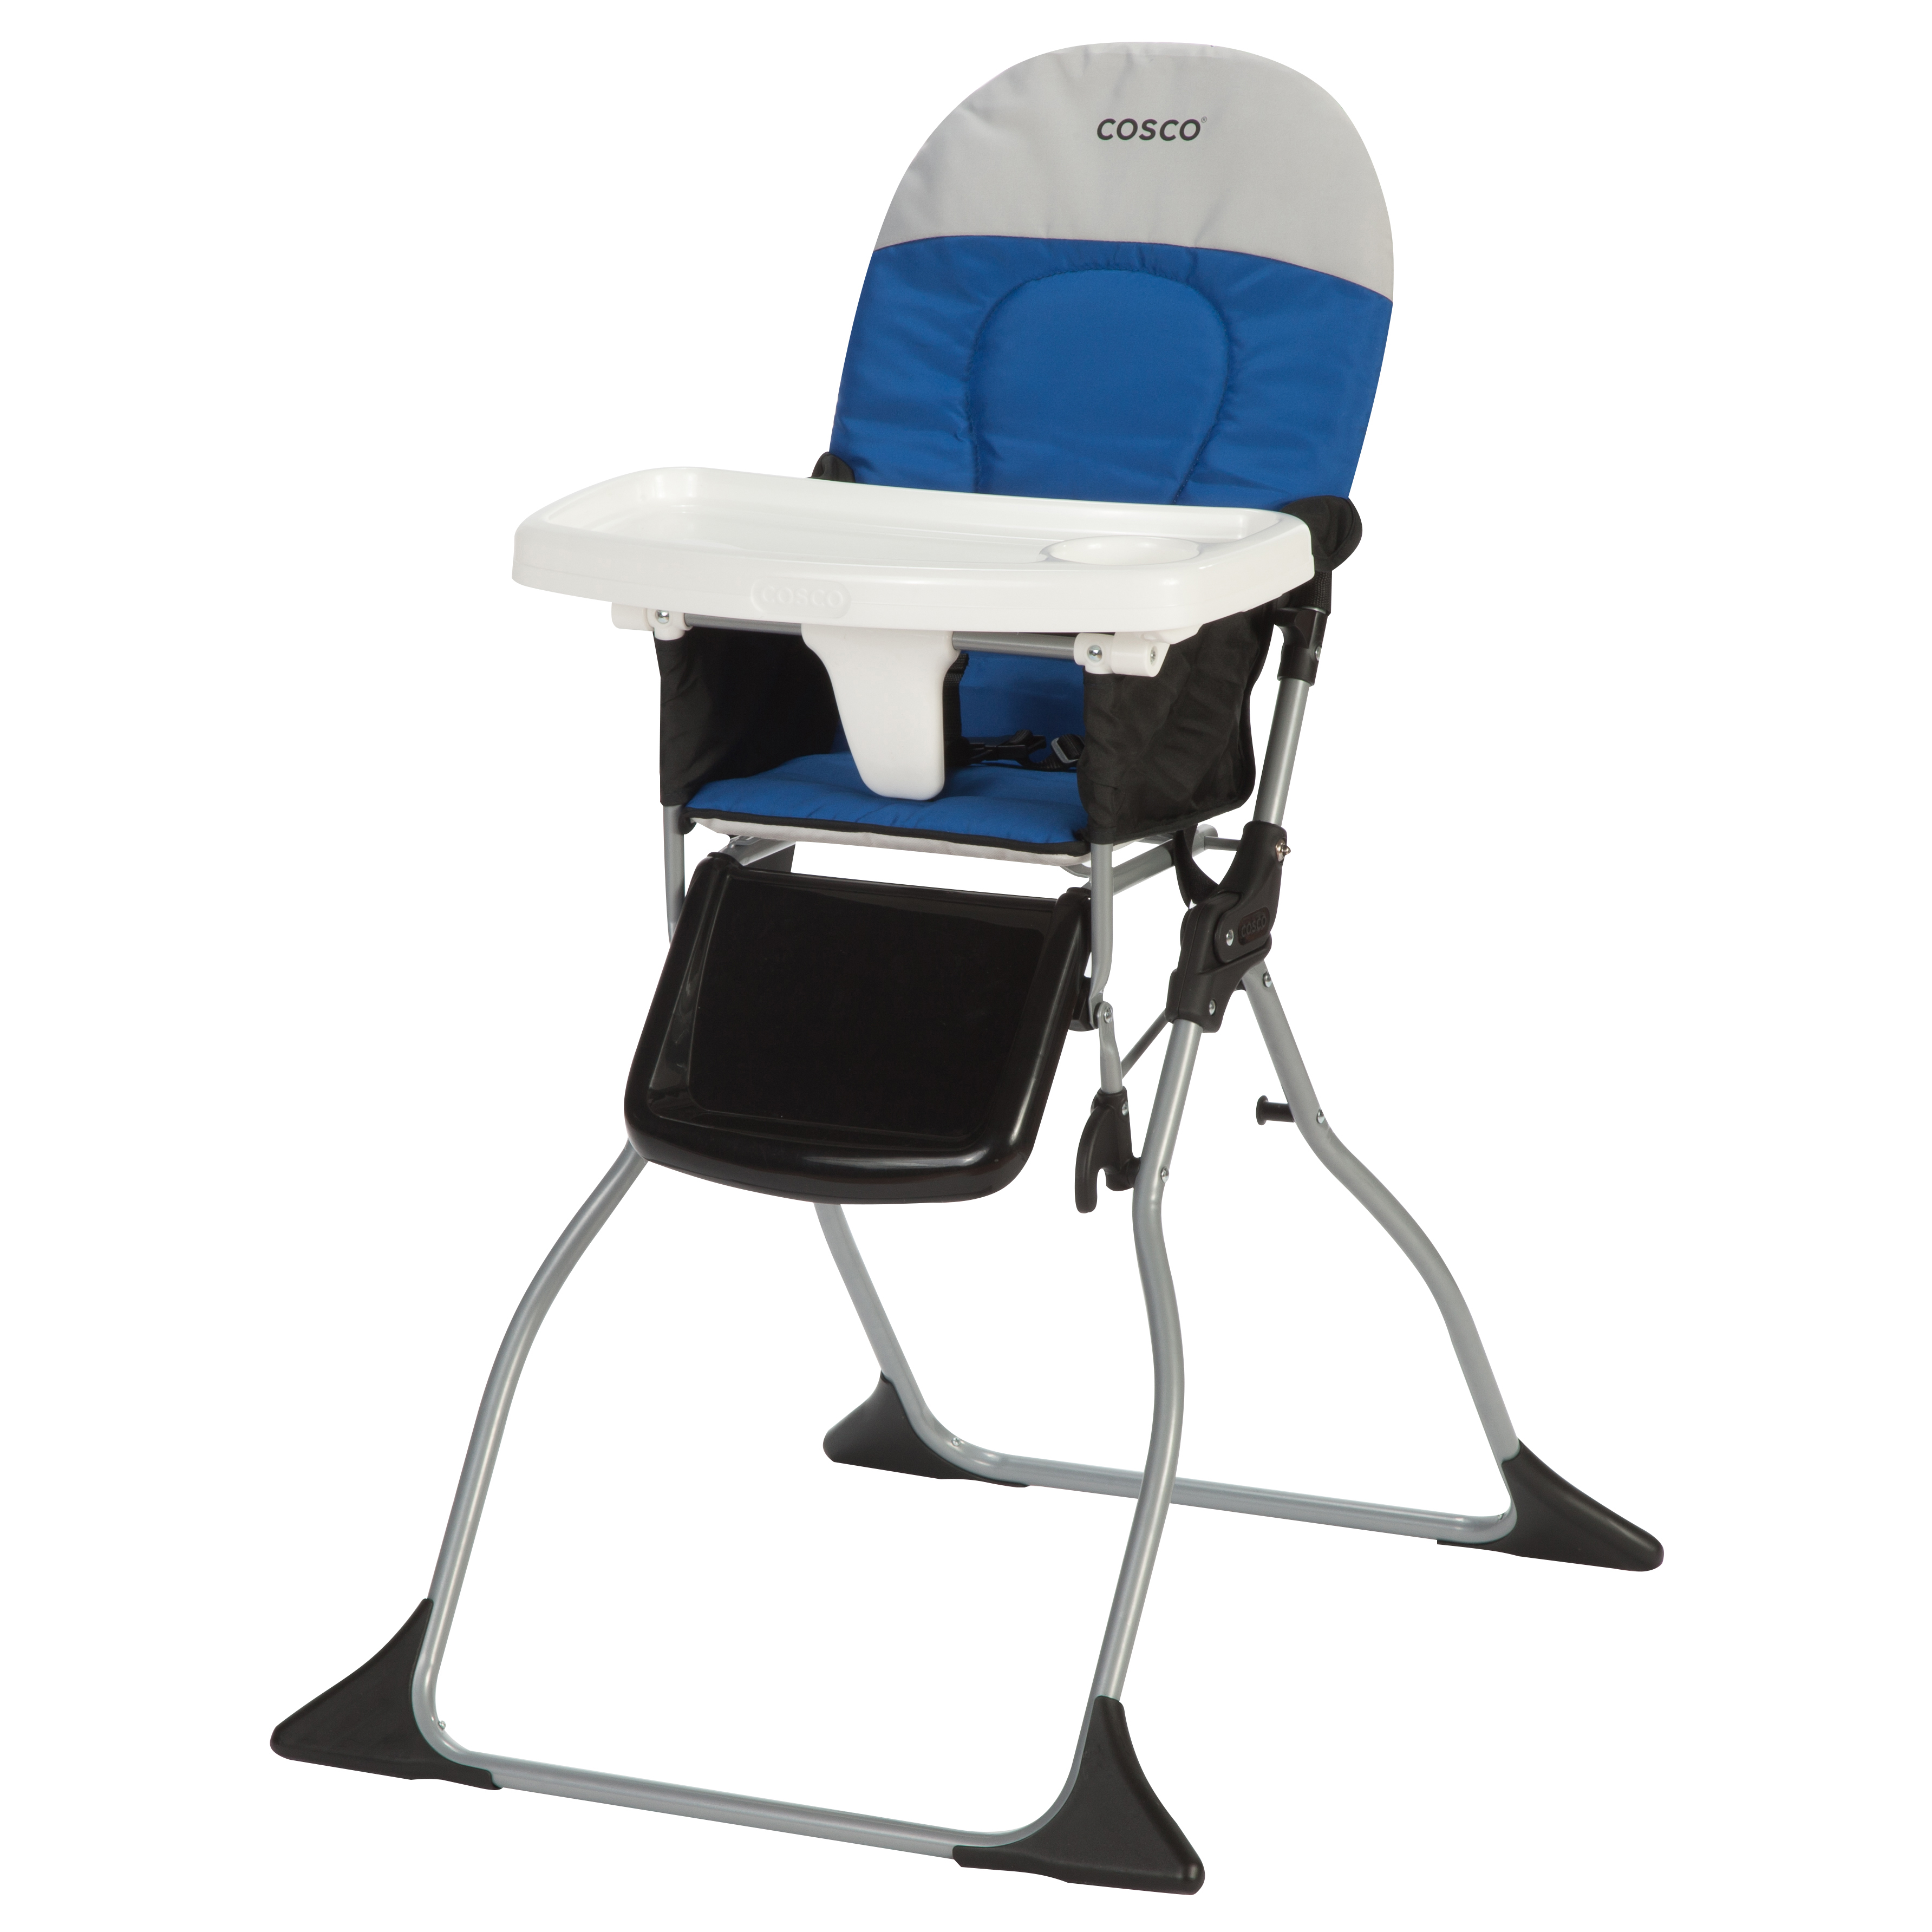 Adjustable High Chair Adjustable High Chairs On Shoppinder